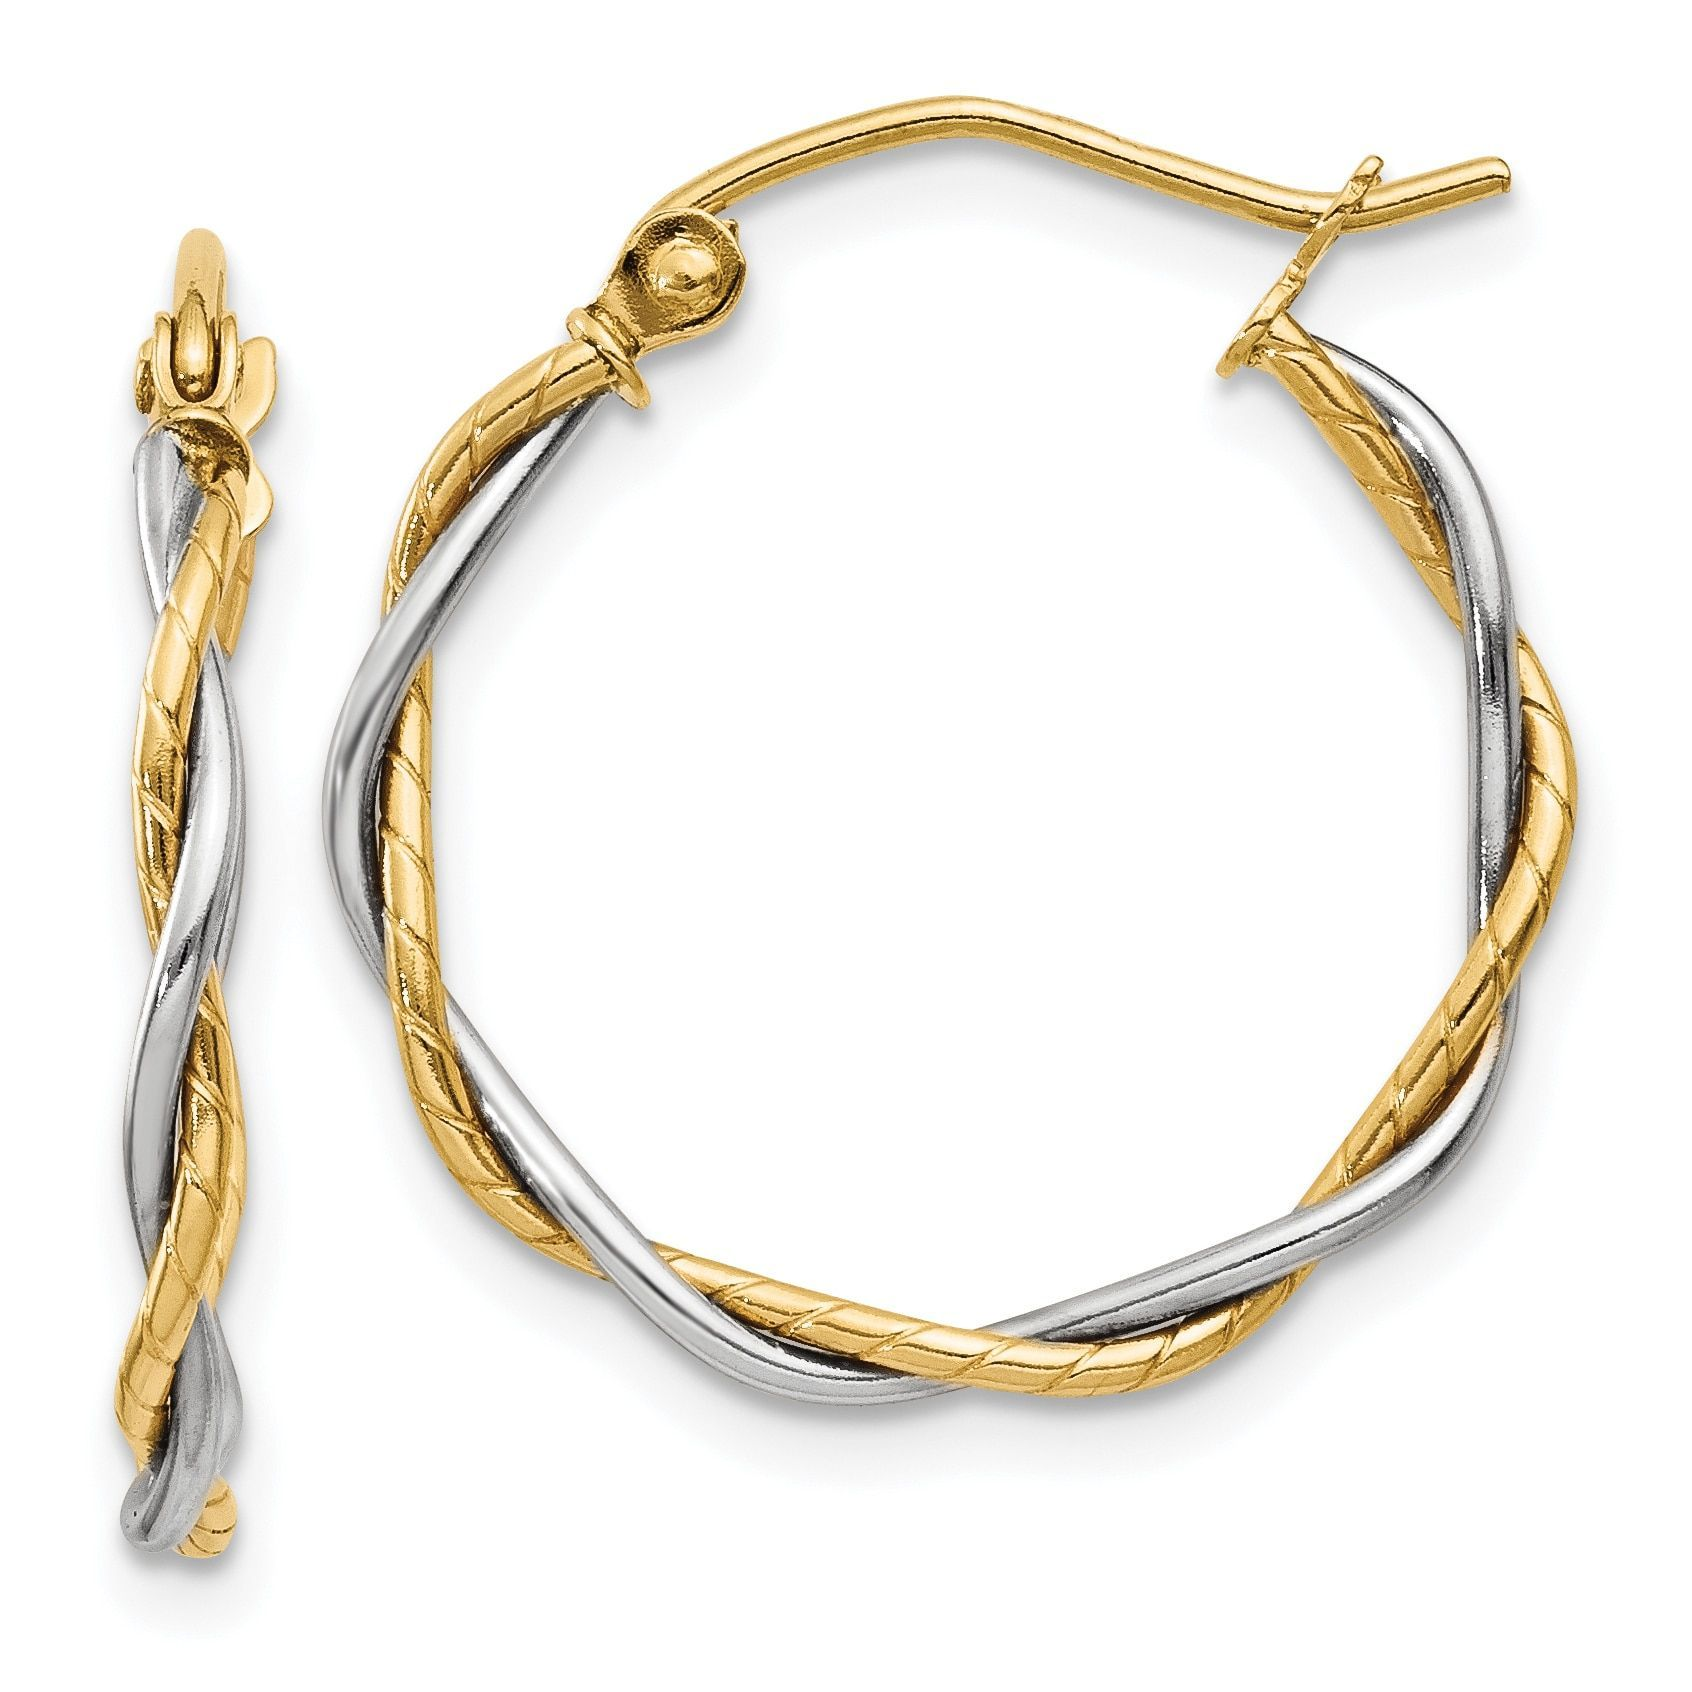 Versil 14k Gold Polished 18mm Twisted Hoop Earrings Clean Gold